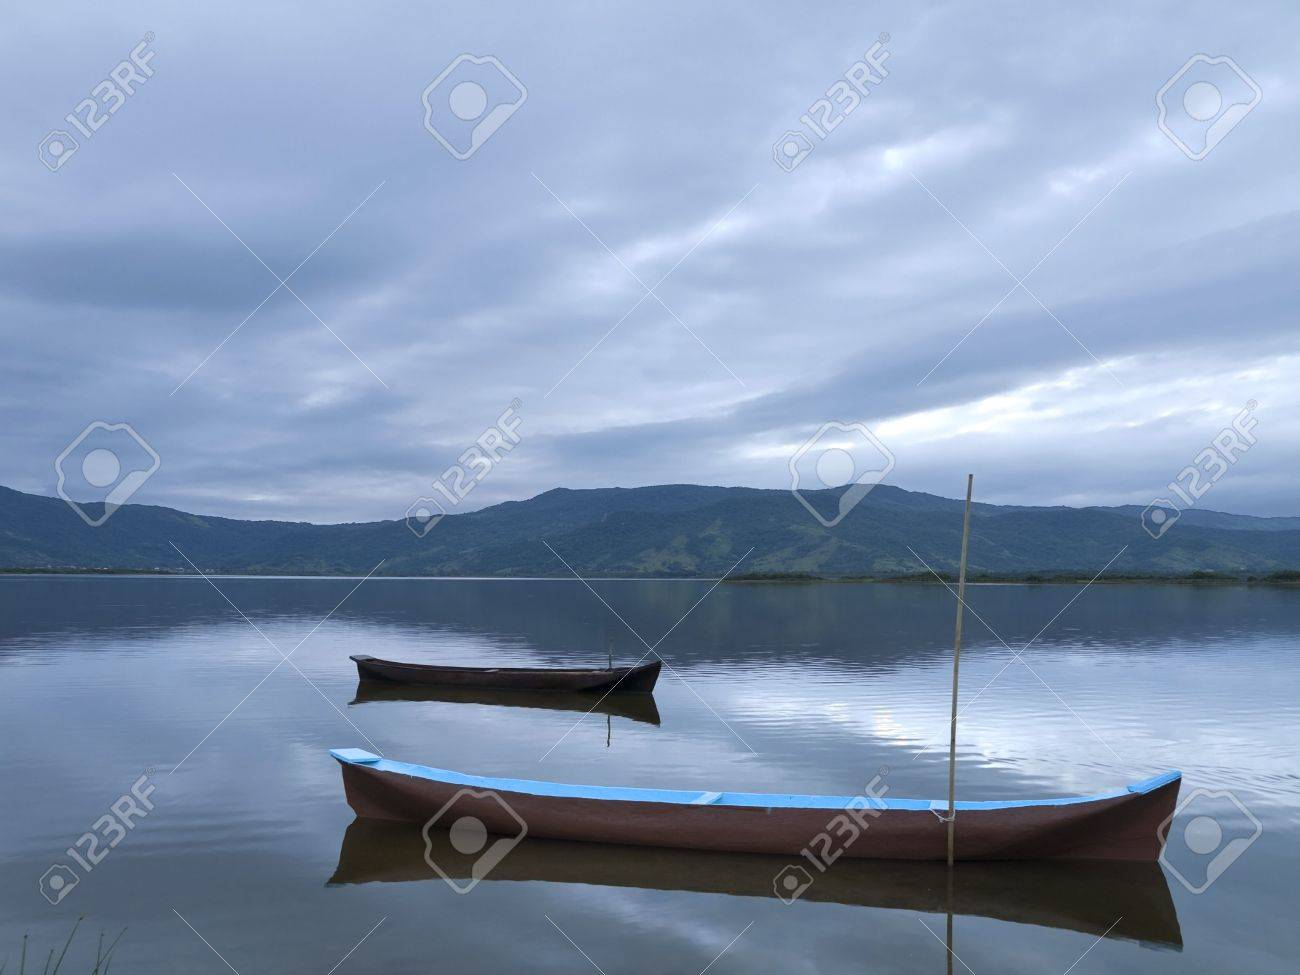 Two canoes tied on a quiet lake under a cloudy sky. Stock Photo - 5828728